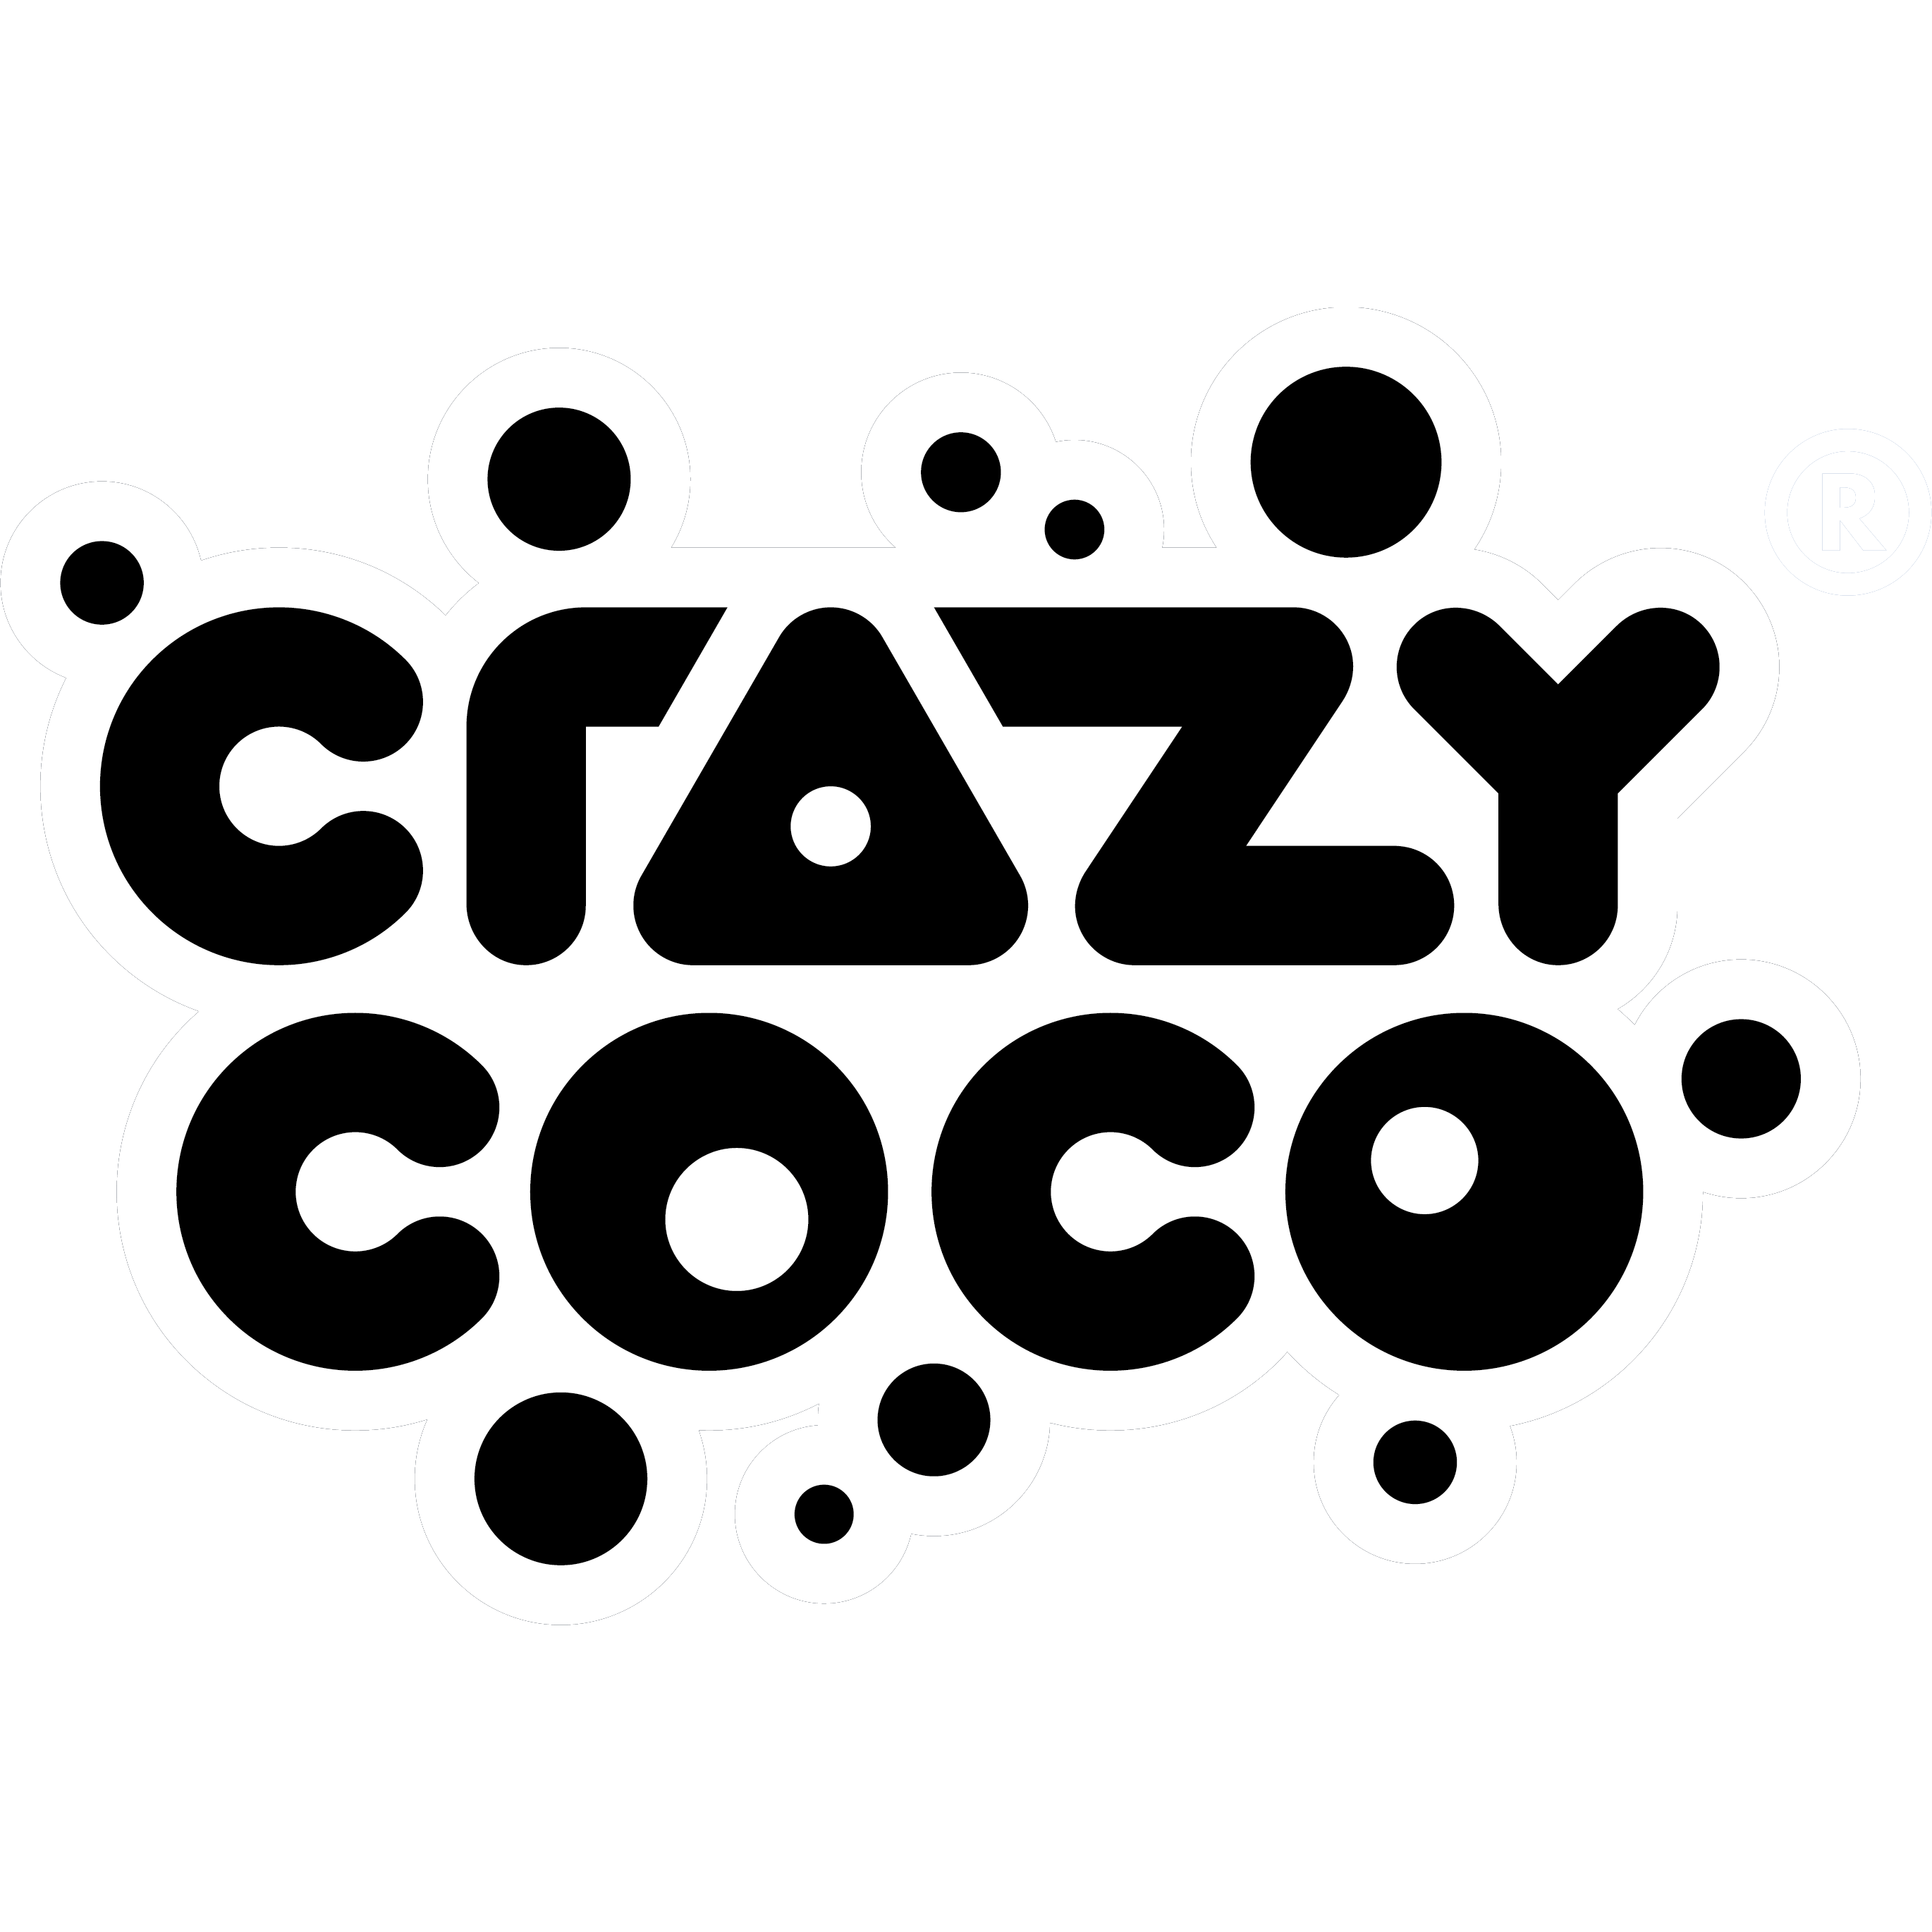 CRAZYCOCO  Team